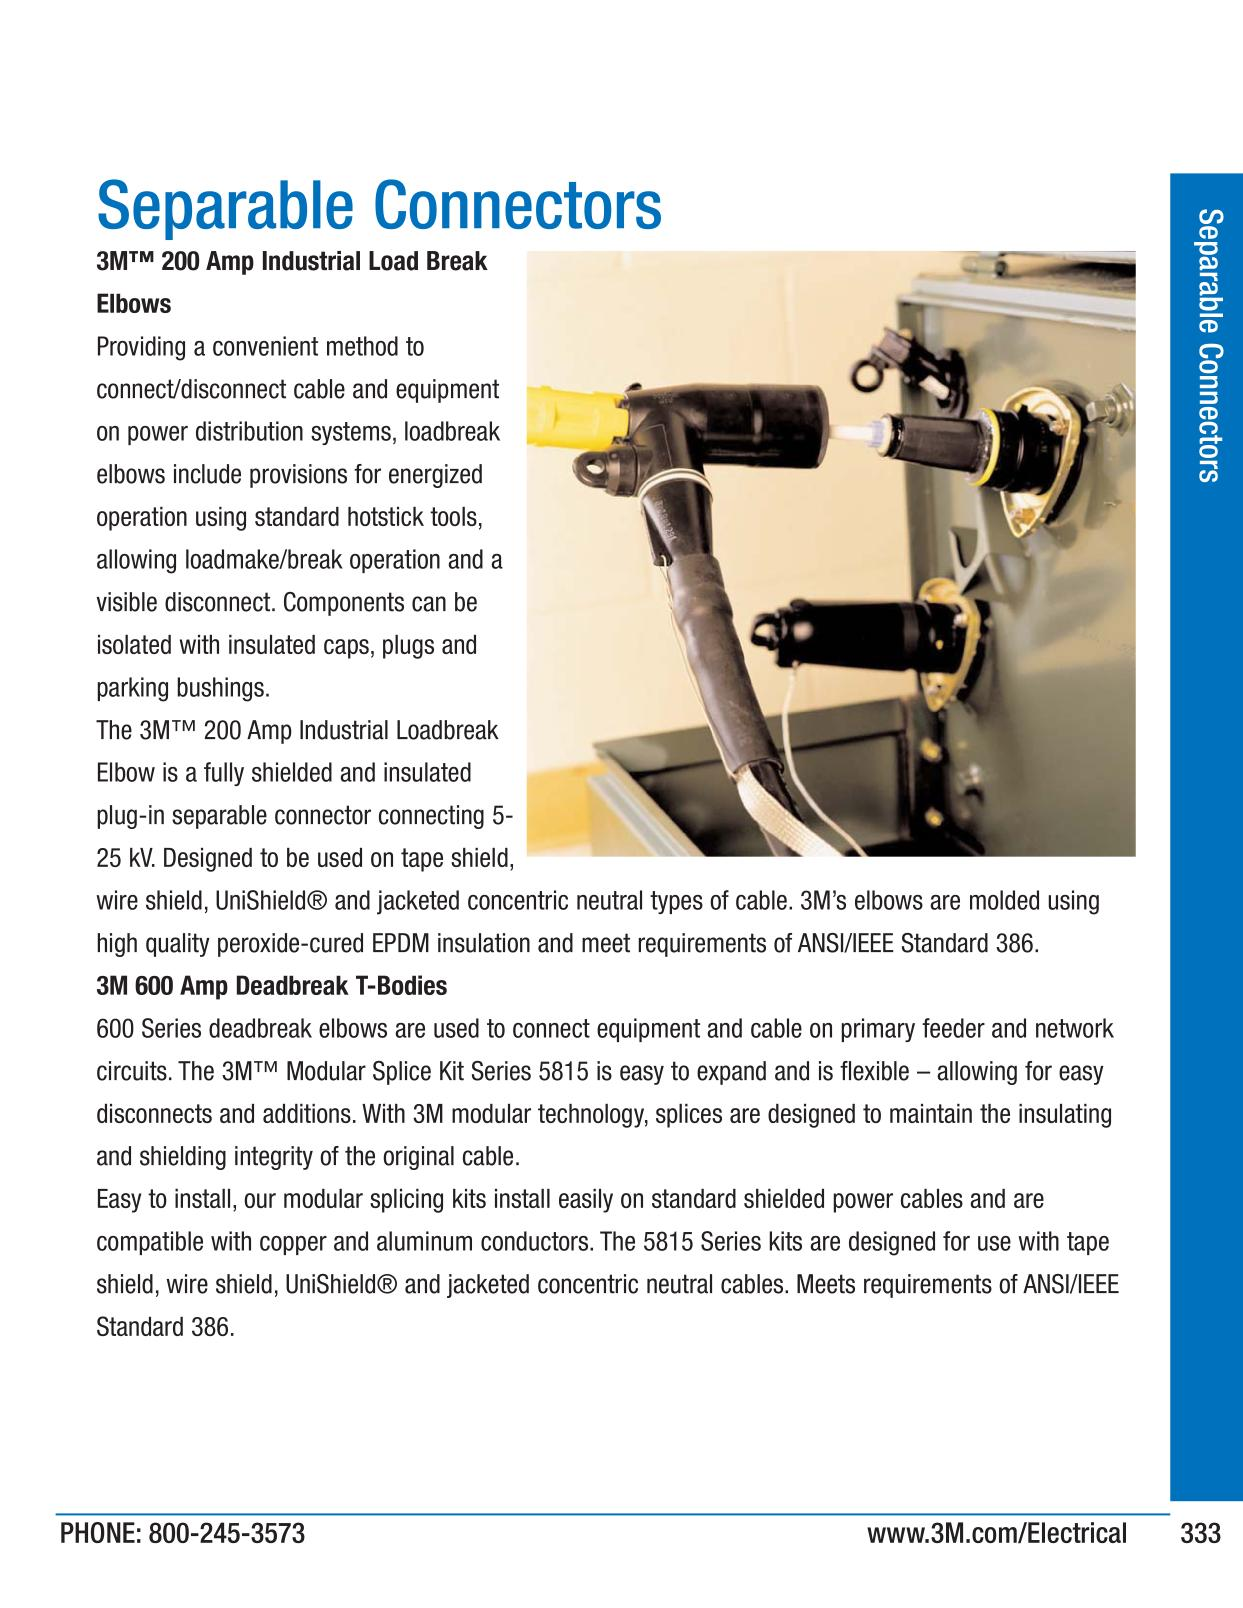 Separable Connectors - 3M Electrical Products Page 333